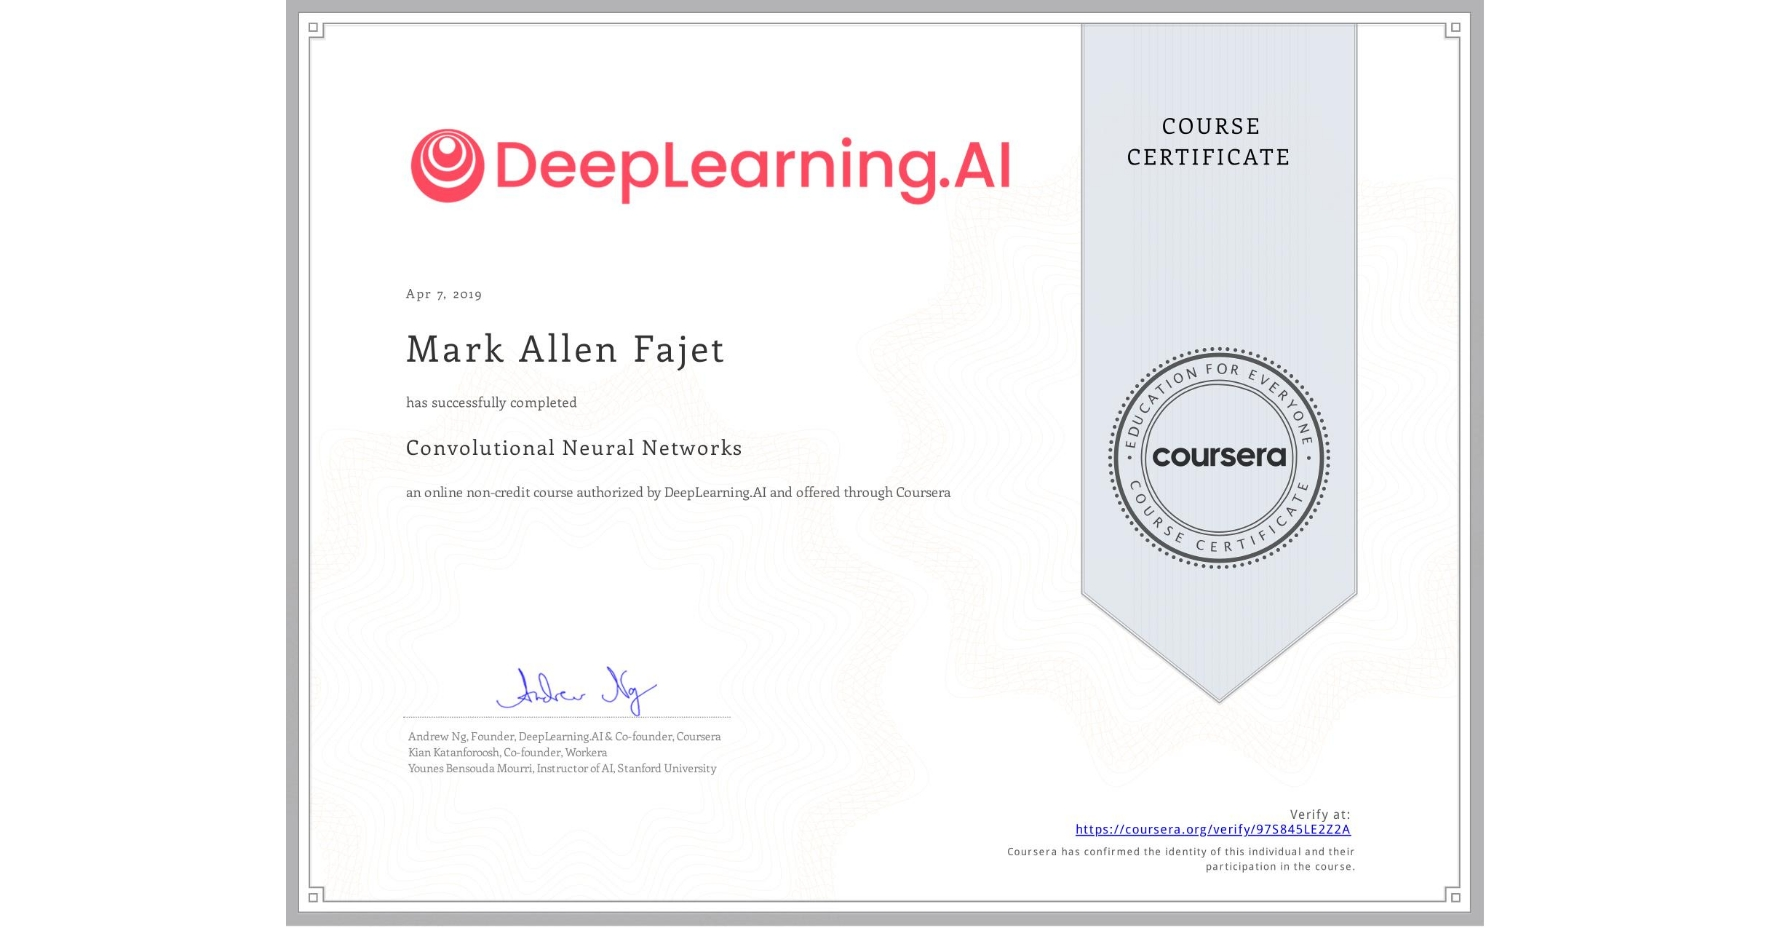 View certificate for Mark Allen Fajet, Convolutional Neural Networks, an online non-credit course authorized by DeepLearning.AI and offered through Coursera